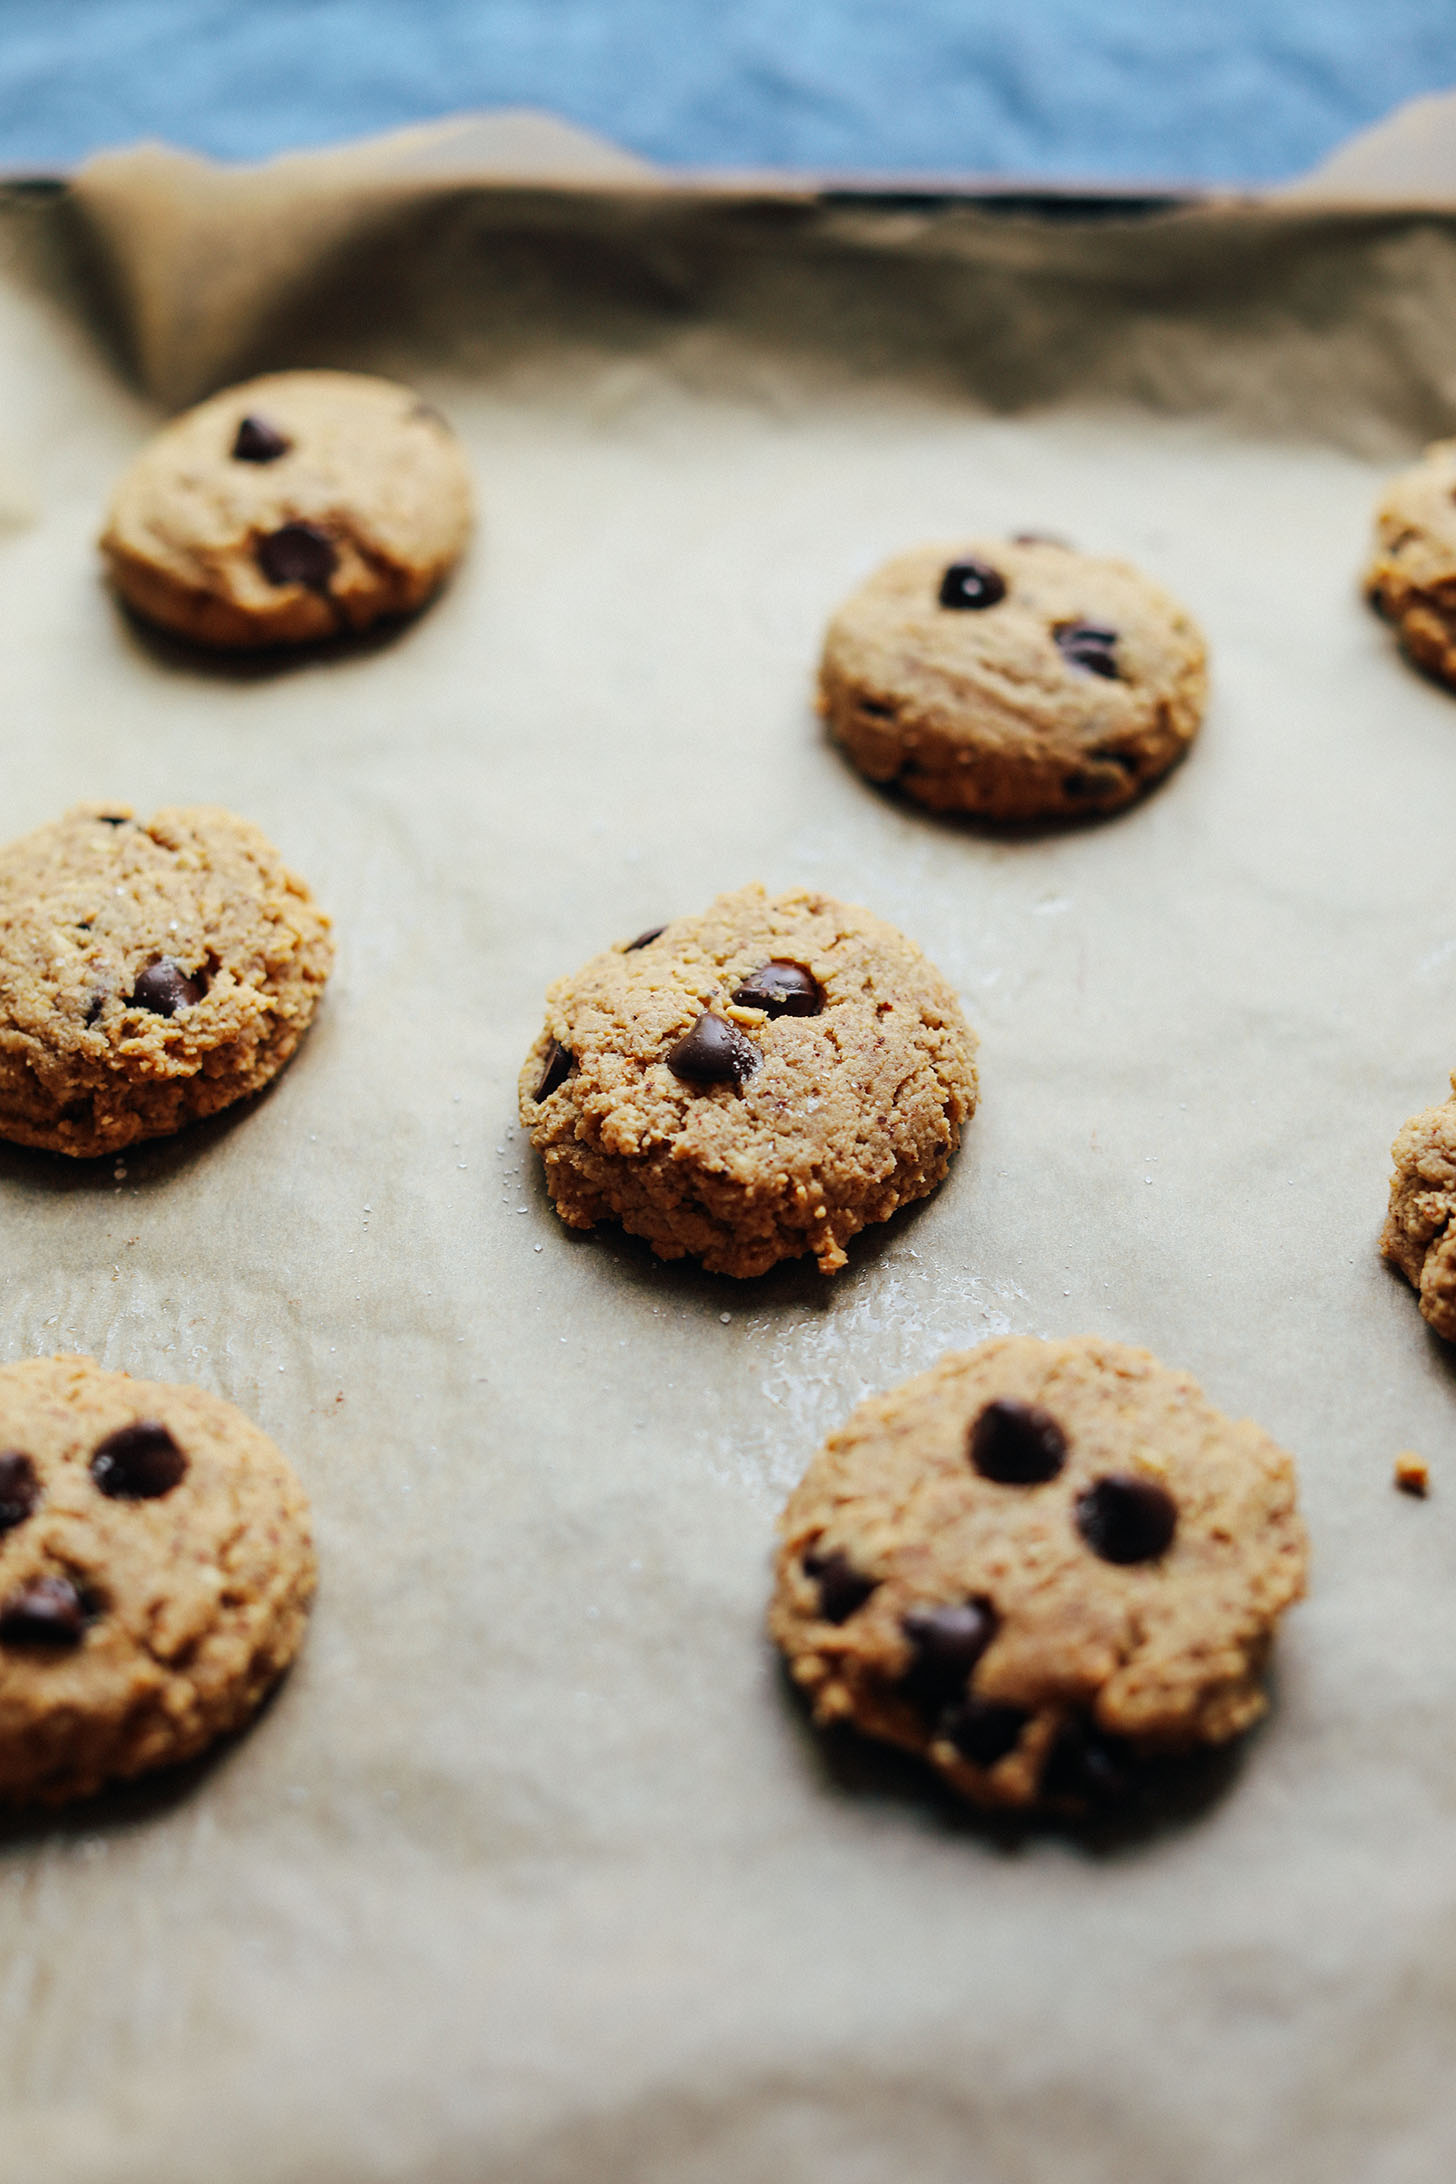 Parchment-lined baking sheet with Grain-Free Almond Butter Chocolate Chip Cookies